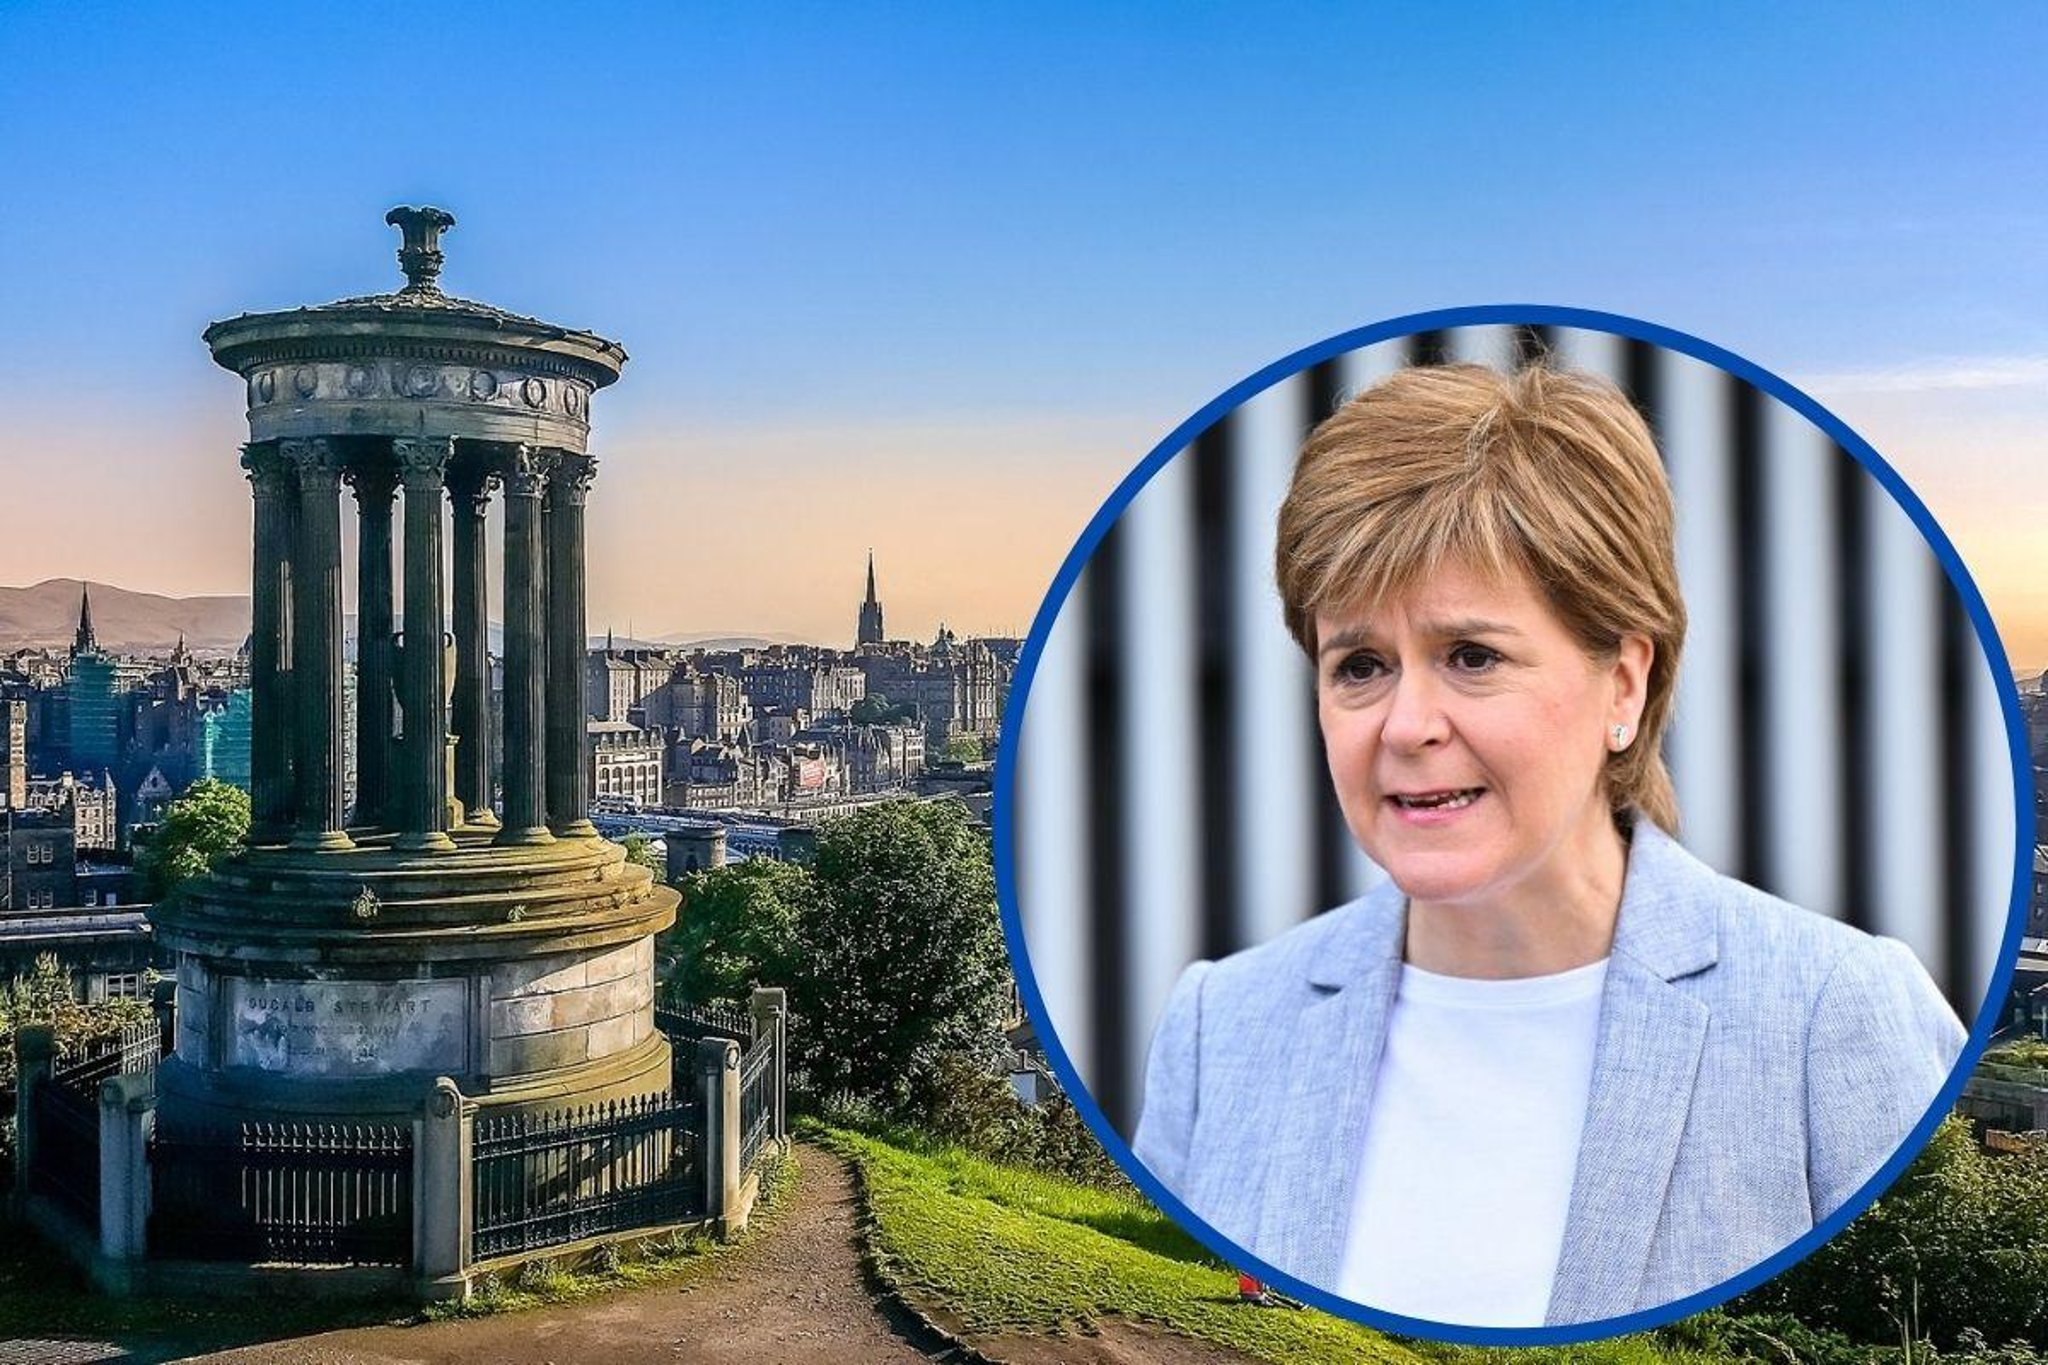 Covid Scotland: Edinburgh and the Lothians coronavirus levels to stay the same as Nicola Sturgeon sets new reopening date of July 19